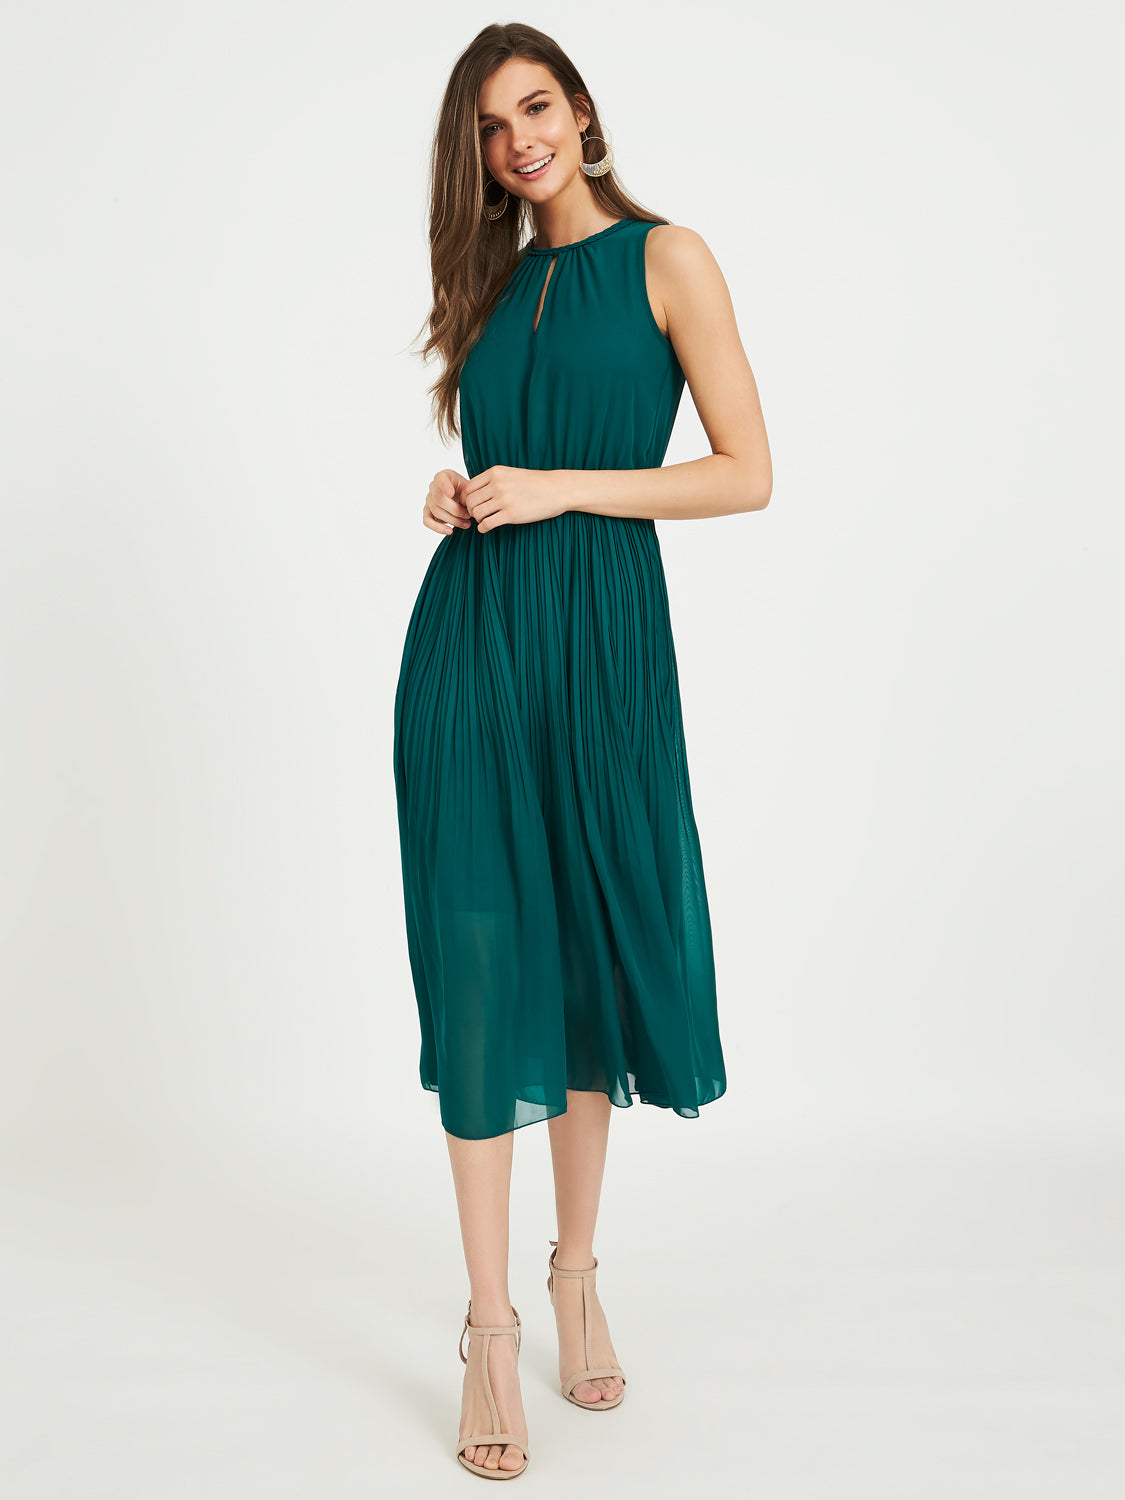 Sleeveless Chiffon Midi Dress